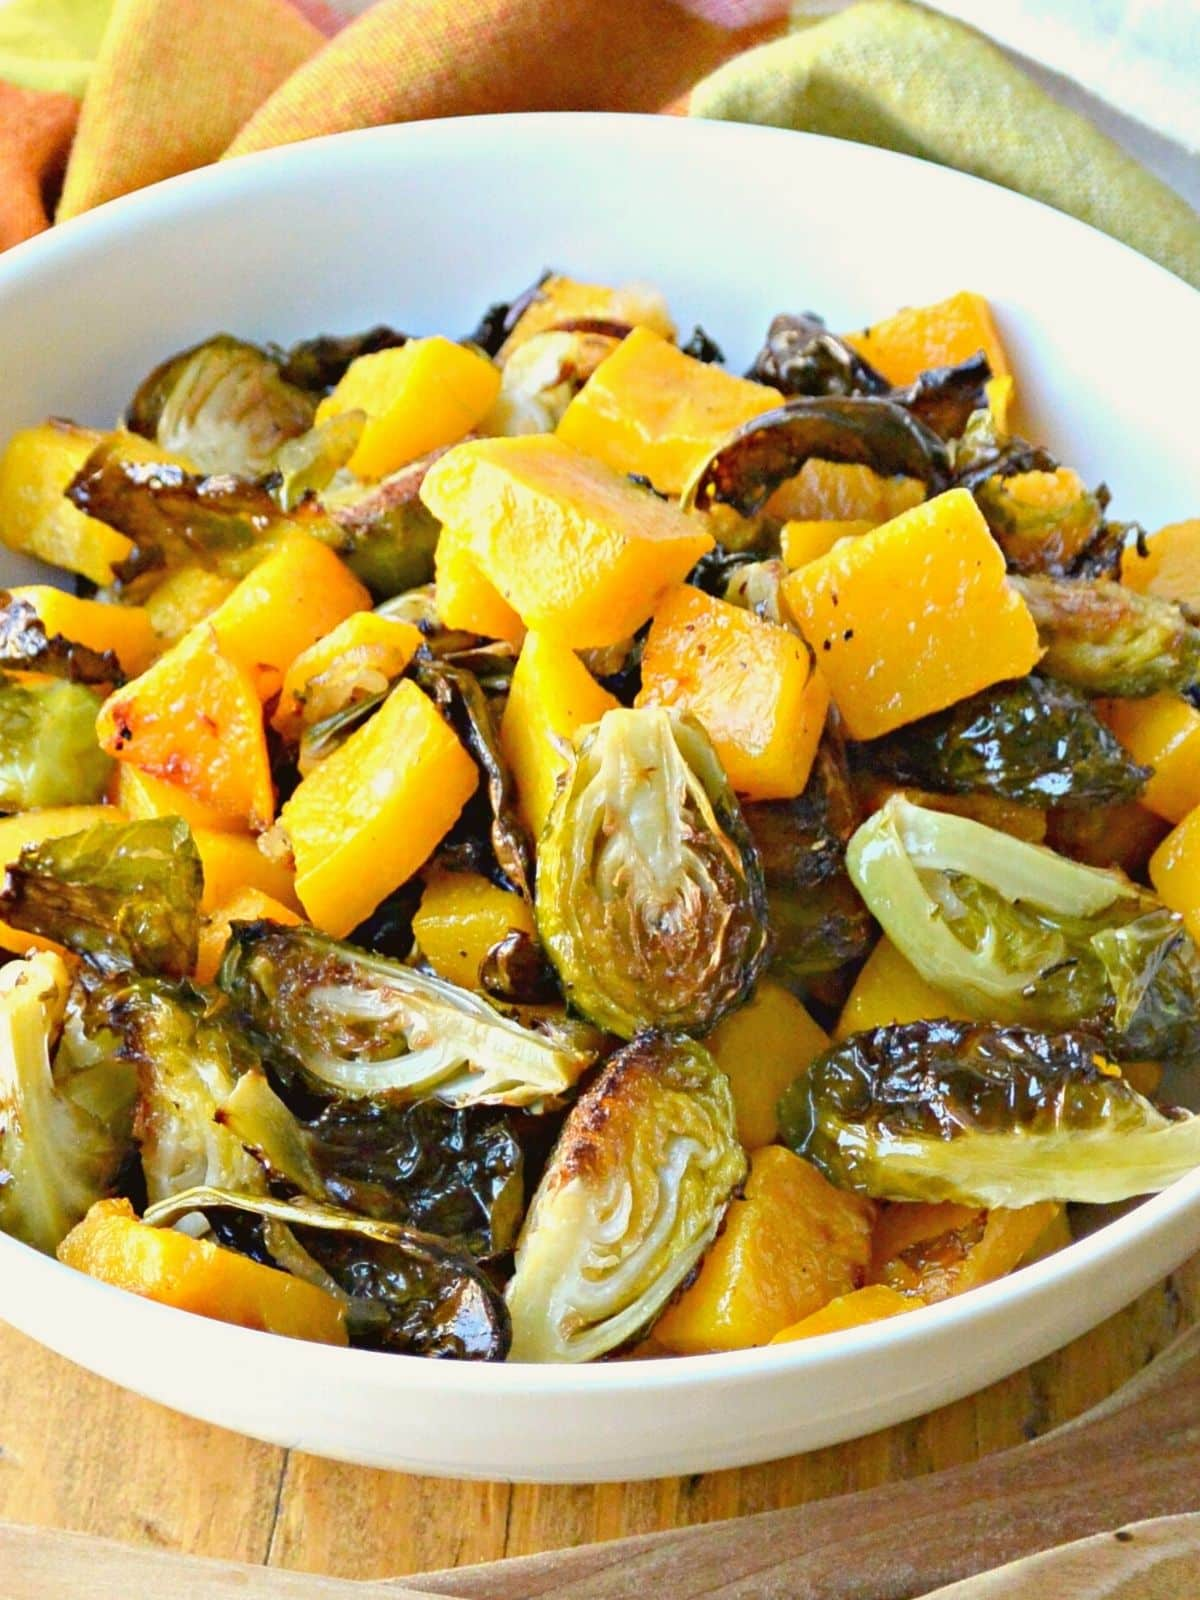 Close up of bowl of butternut squash and Brussels sprouts.